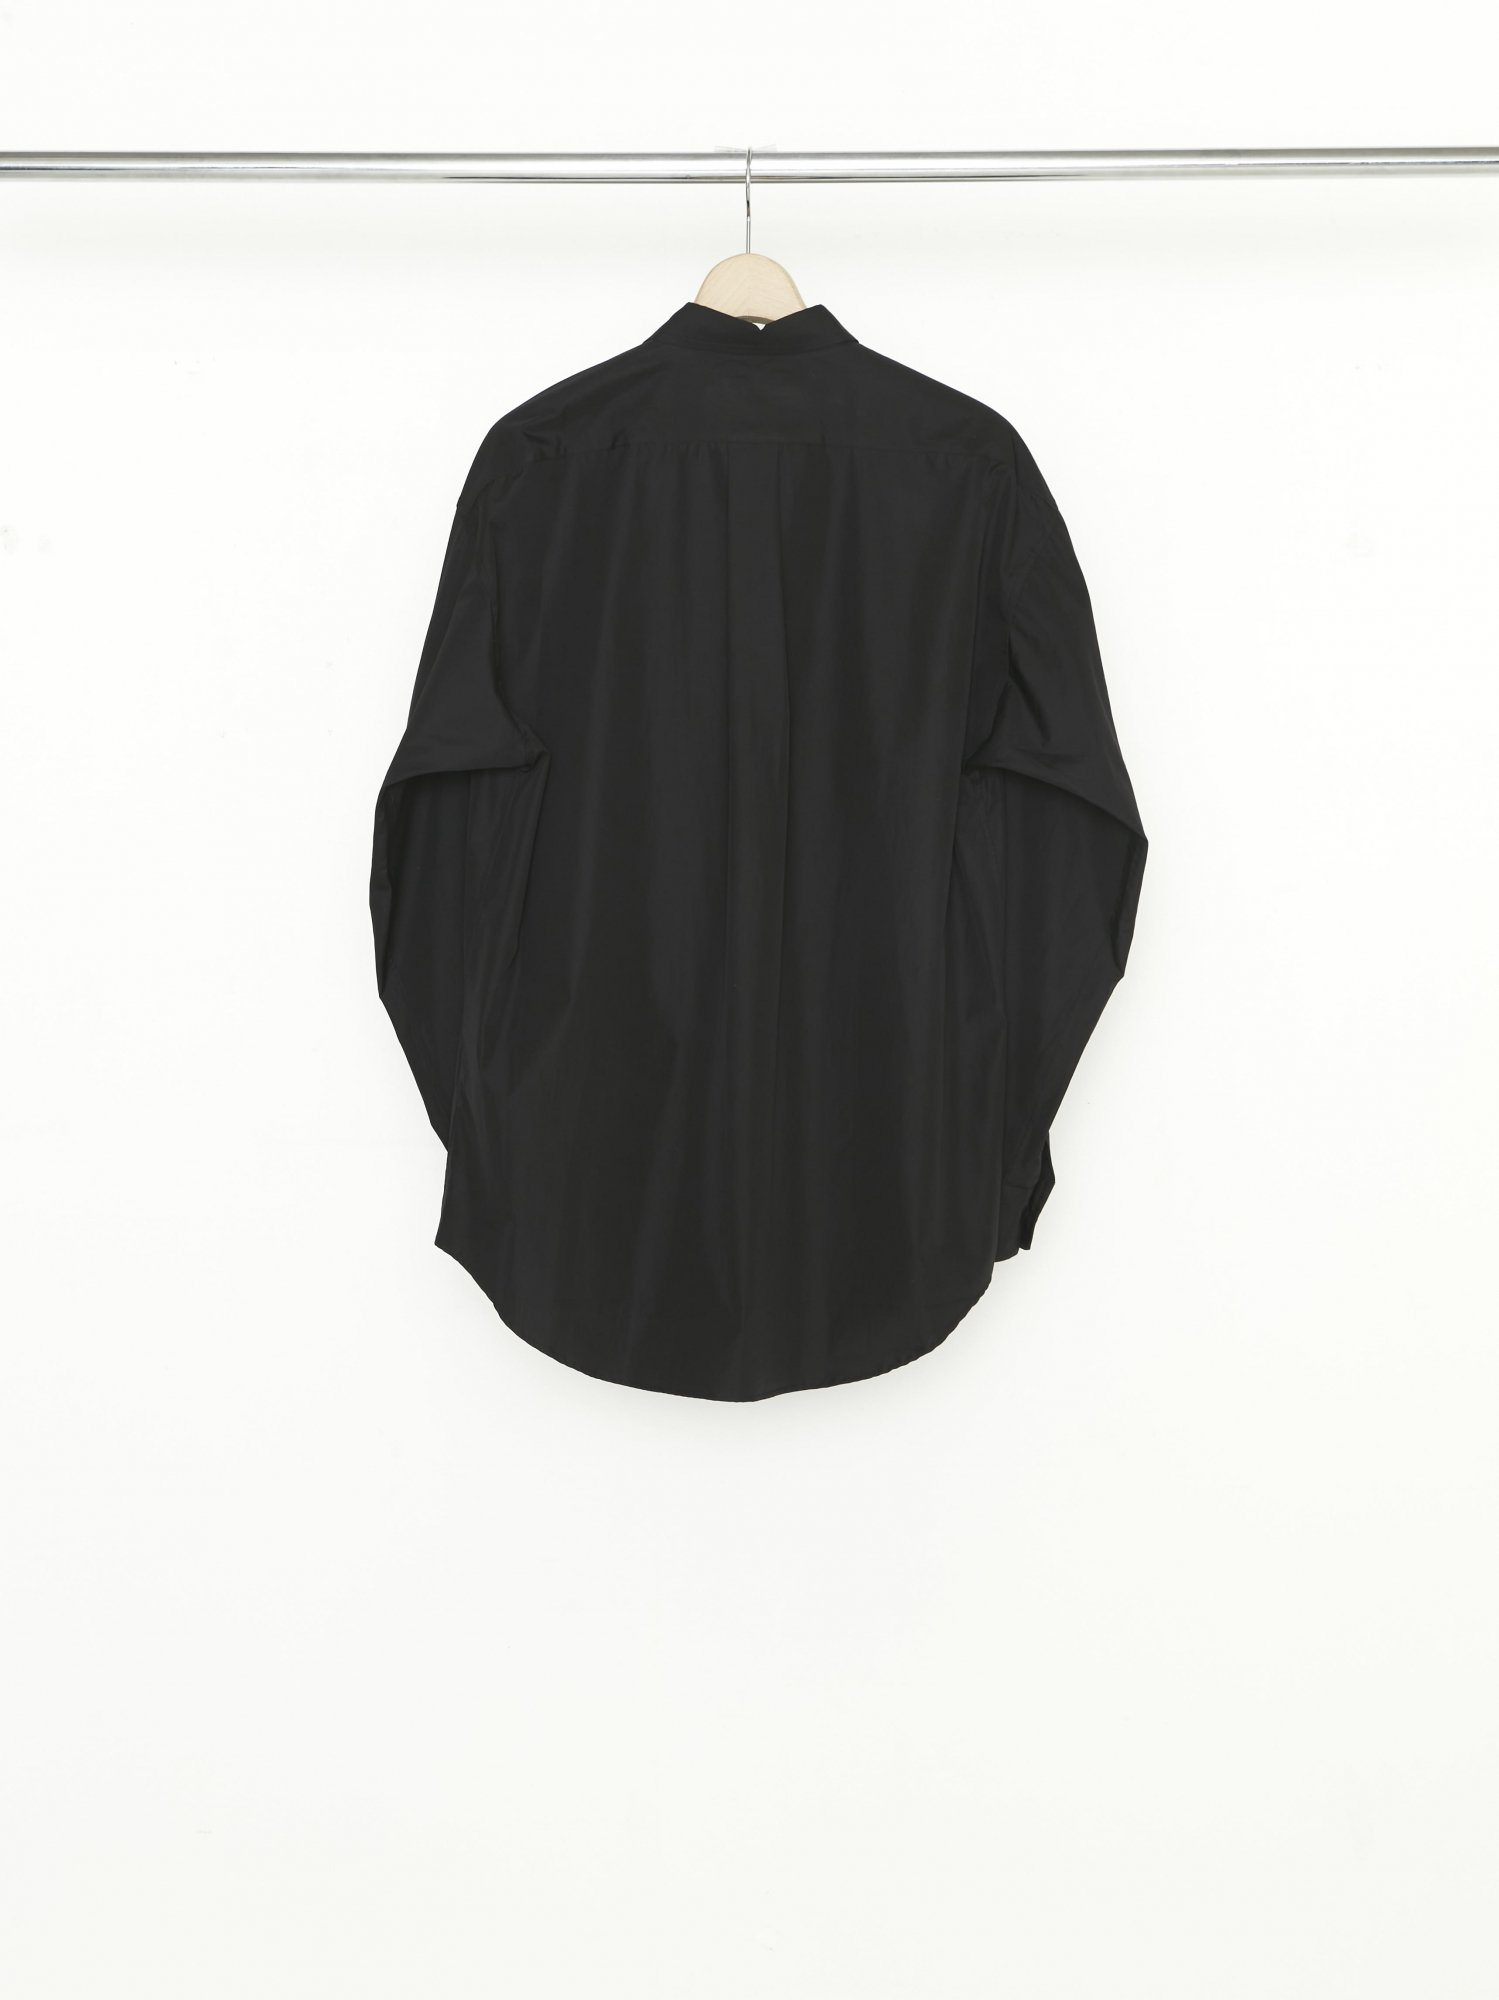 ALLEGE<br />Standard Shirt / BLACK<img class='new_mark_img2' src='https://img.shop-pro.jp/img/new/icons14.gif' style='border:none;display:inline;margin:0px;padding:0px;width:auto;' />